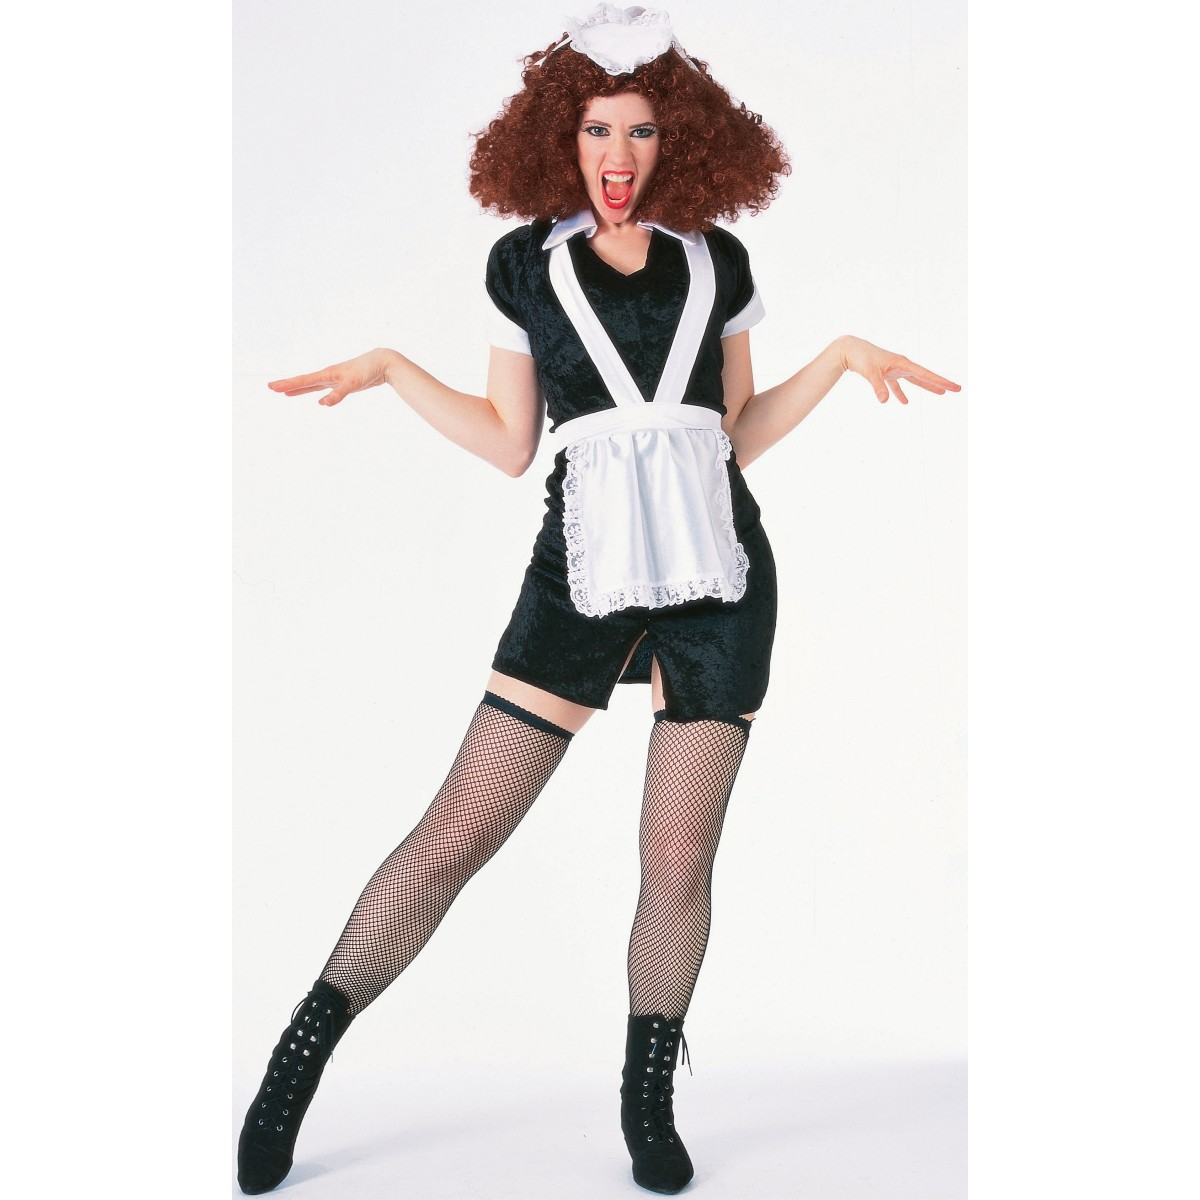 c672 rocky horror picture show columbia halloween fancy